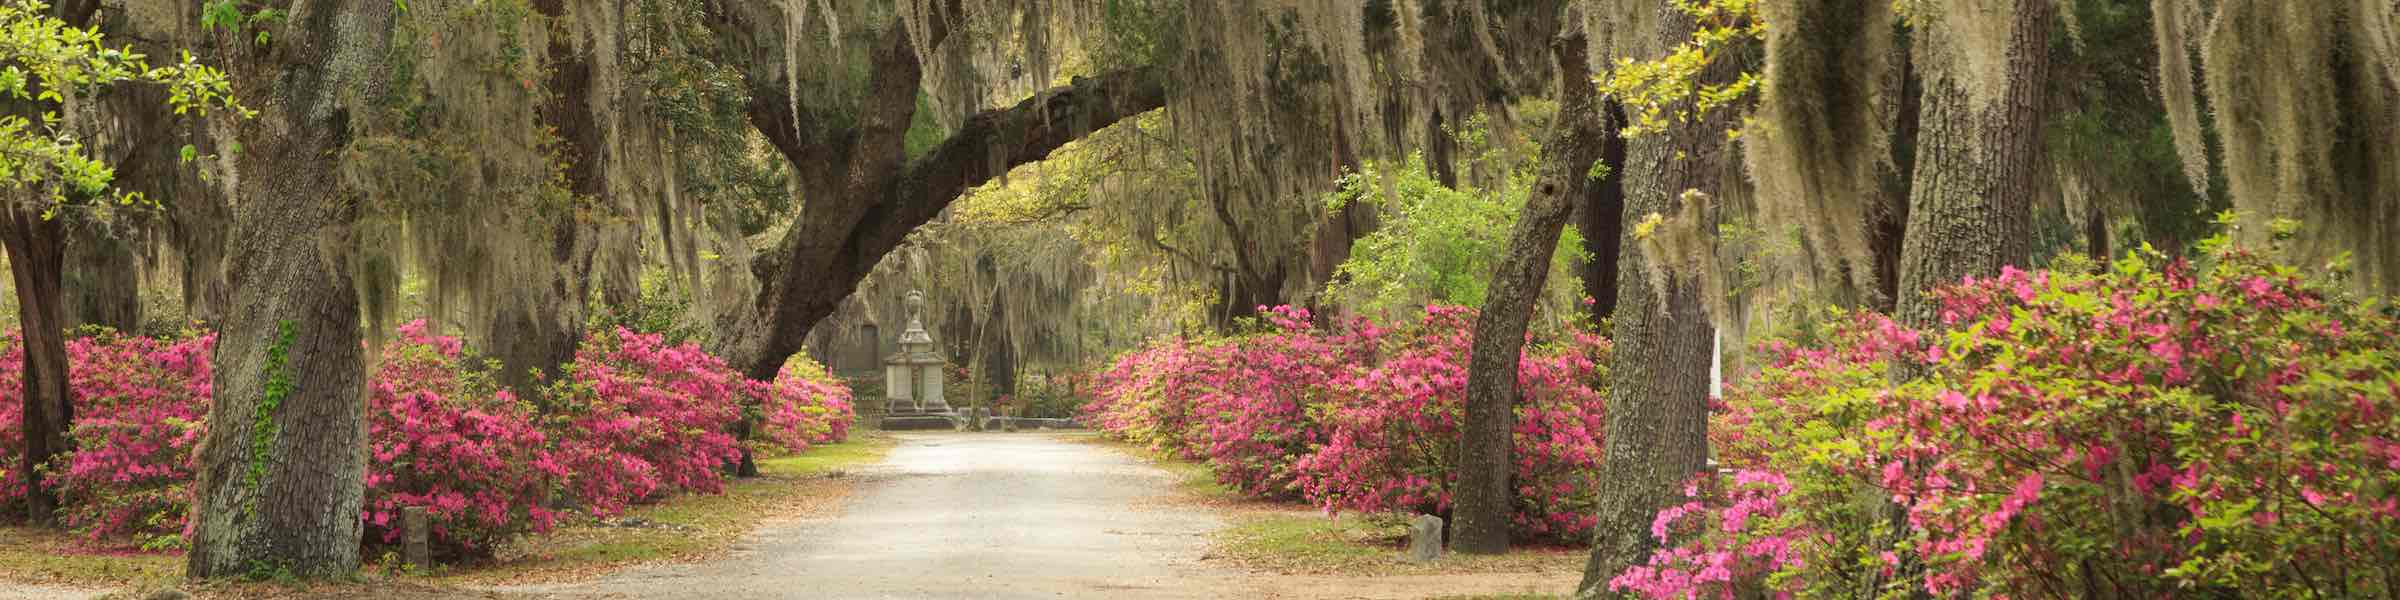 An azalea-and-oak-lined avenue in Bonaventure Cemetery, Savannah, GA.